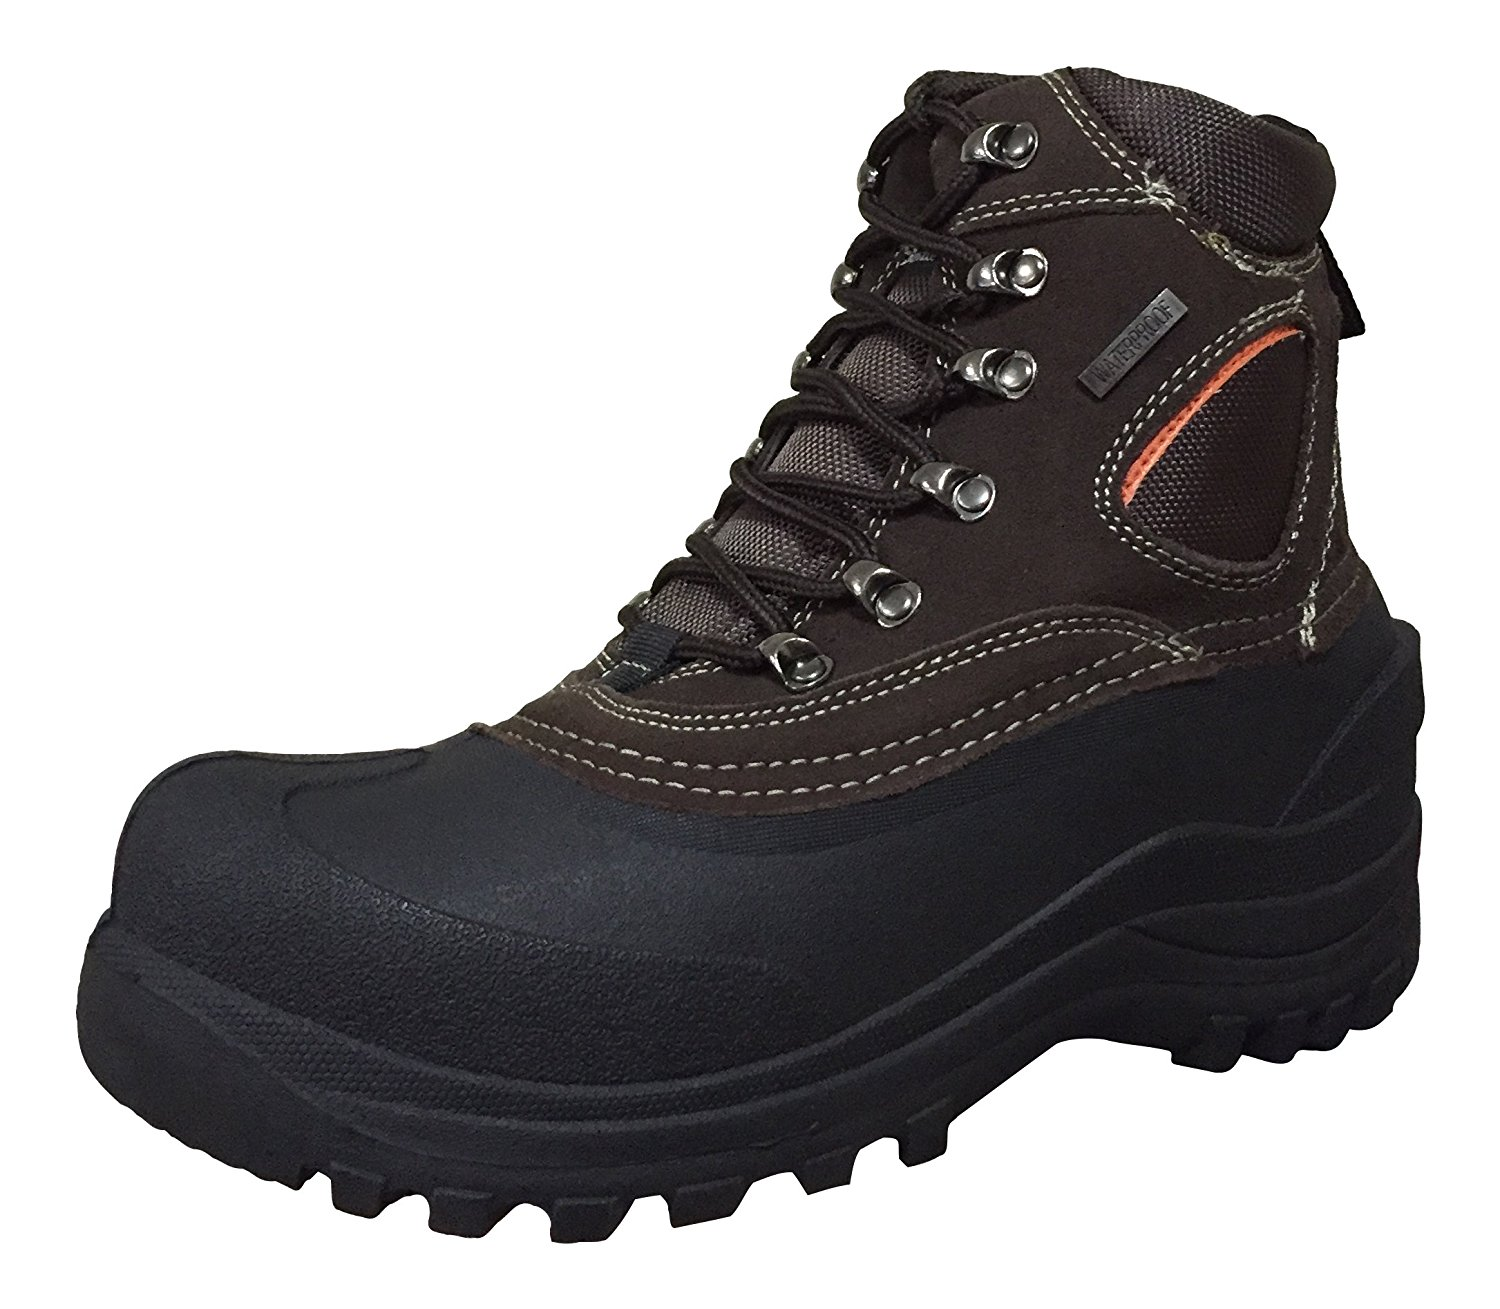 9539a9580 Get Quotations · YC7 Climate X Mens Winter Boots Thermolite Waterproof  Hiking Insulated